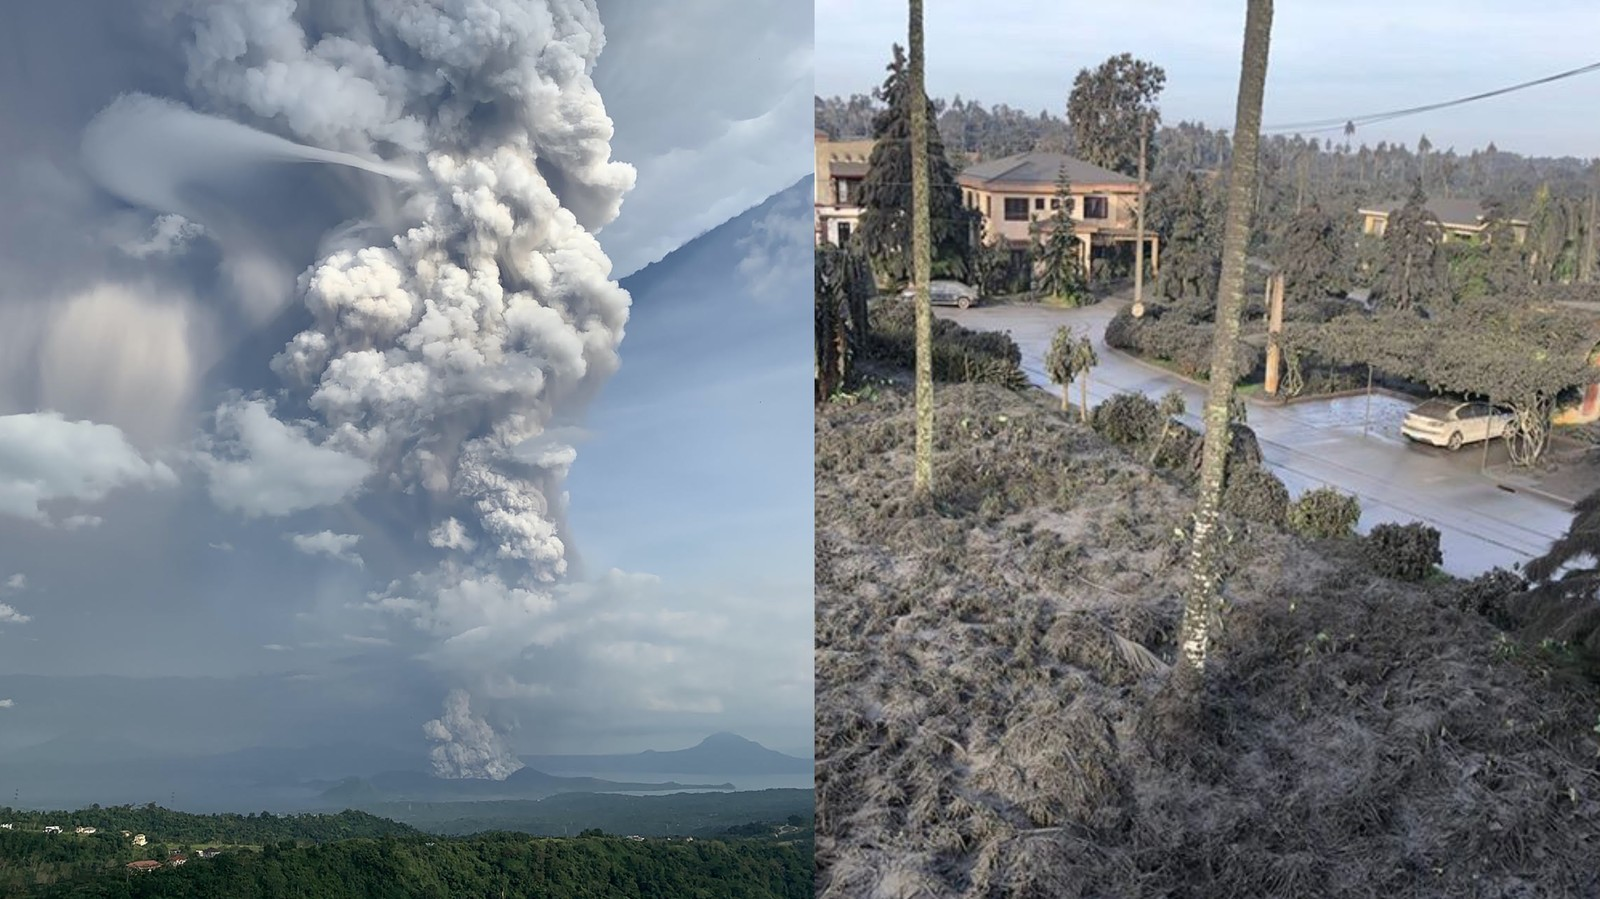 The Most Surreal Photos From the Taal Volcano Eruption in the Philippines